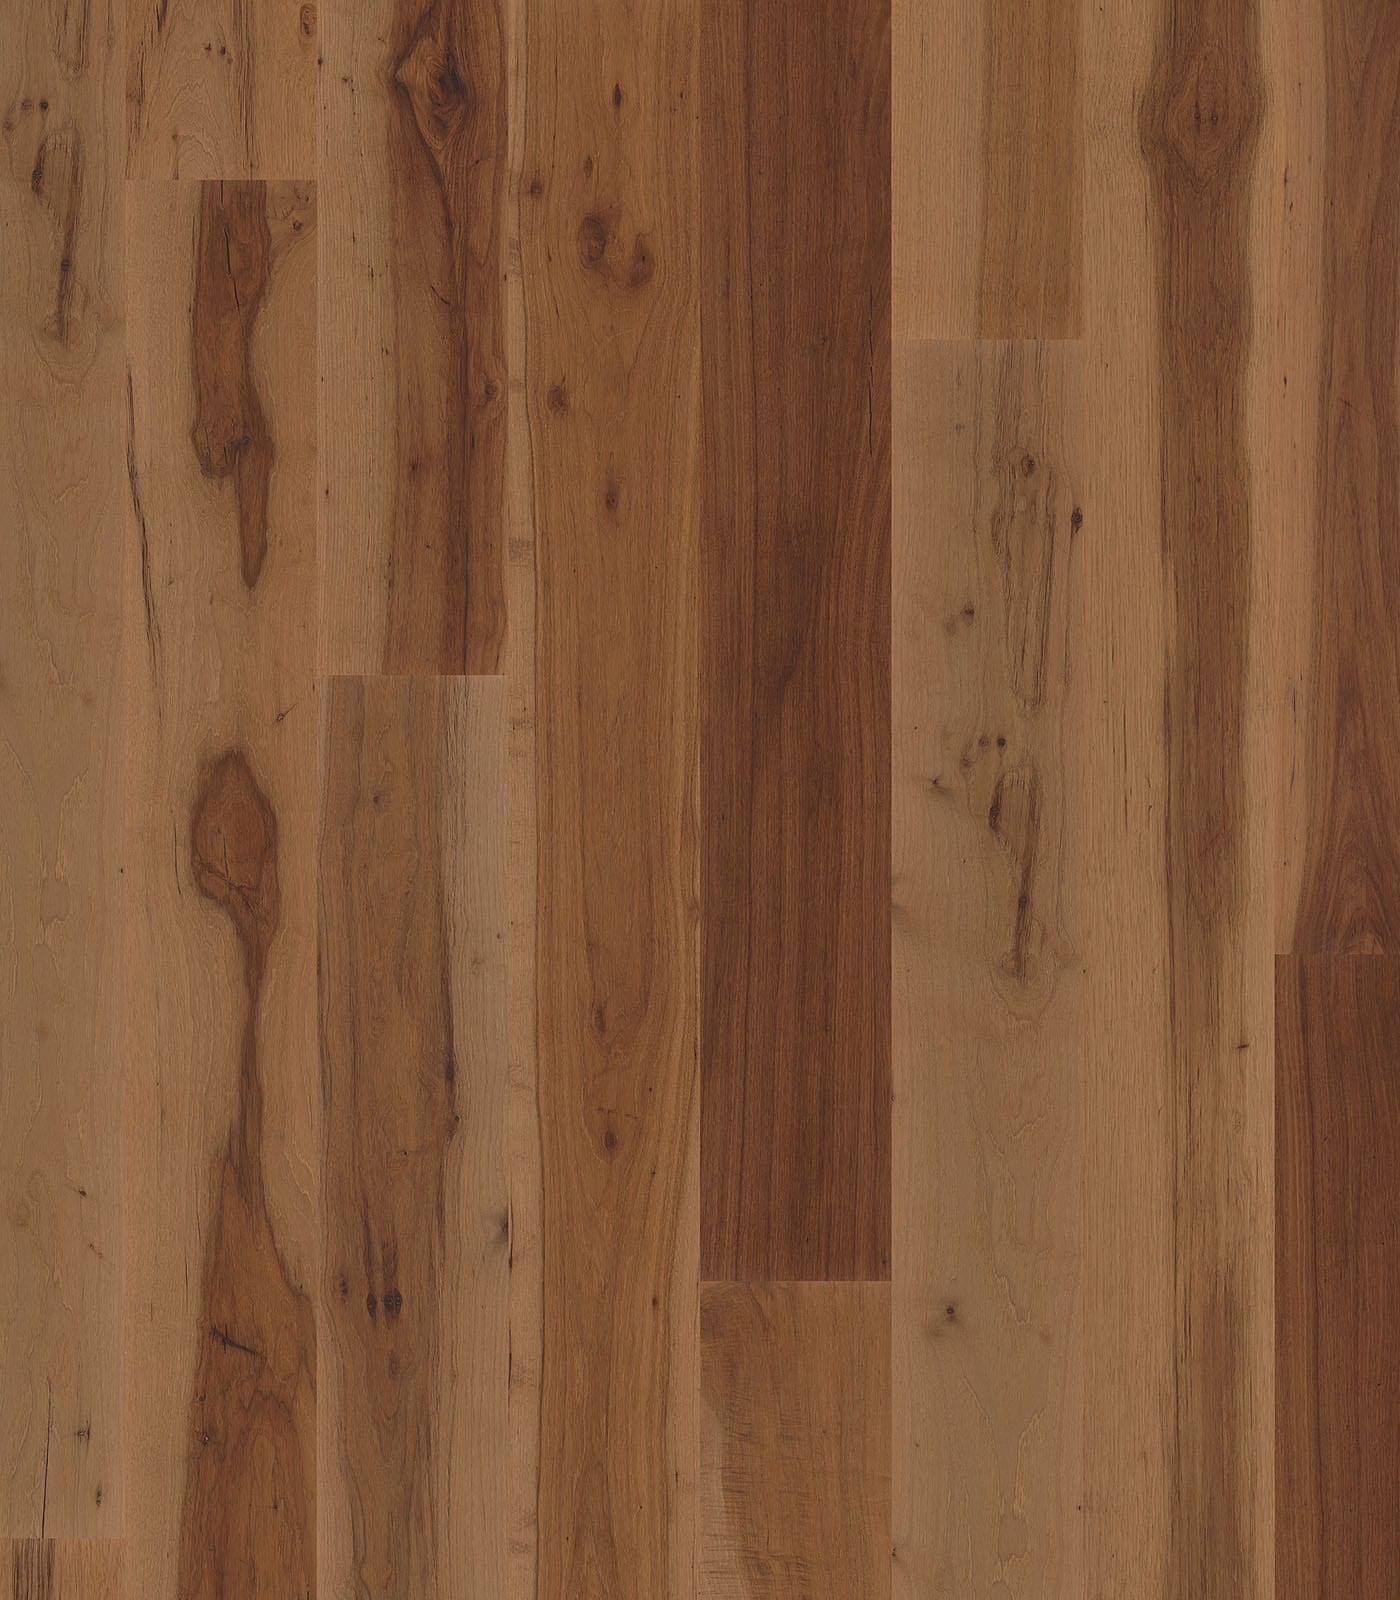 New Orleans-After Oak Collection-Pecan engineered floors - flat